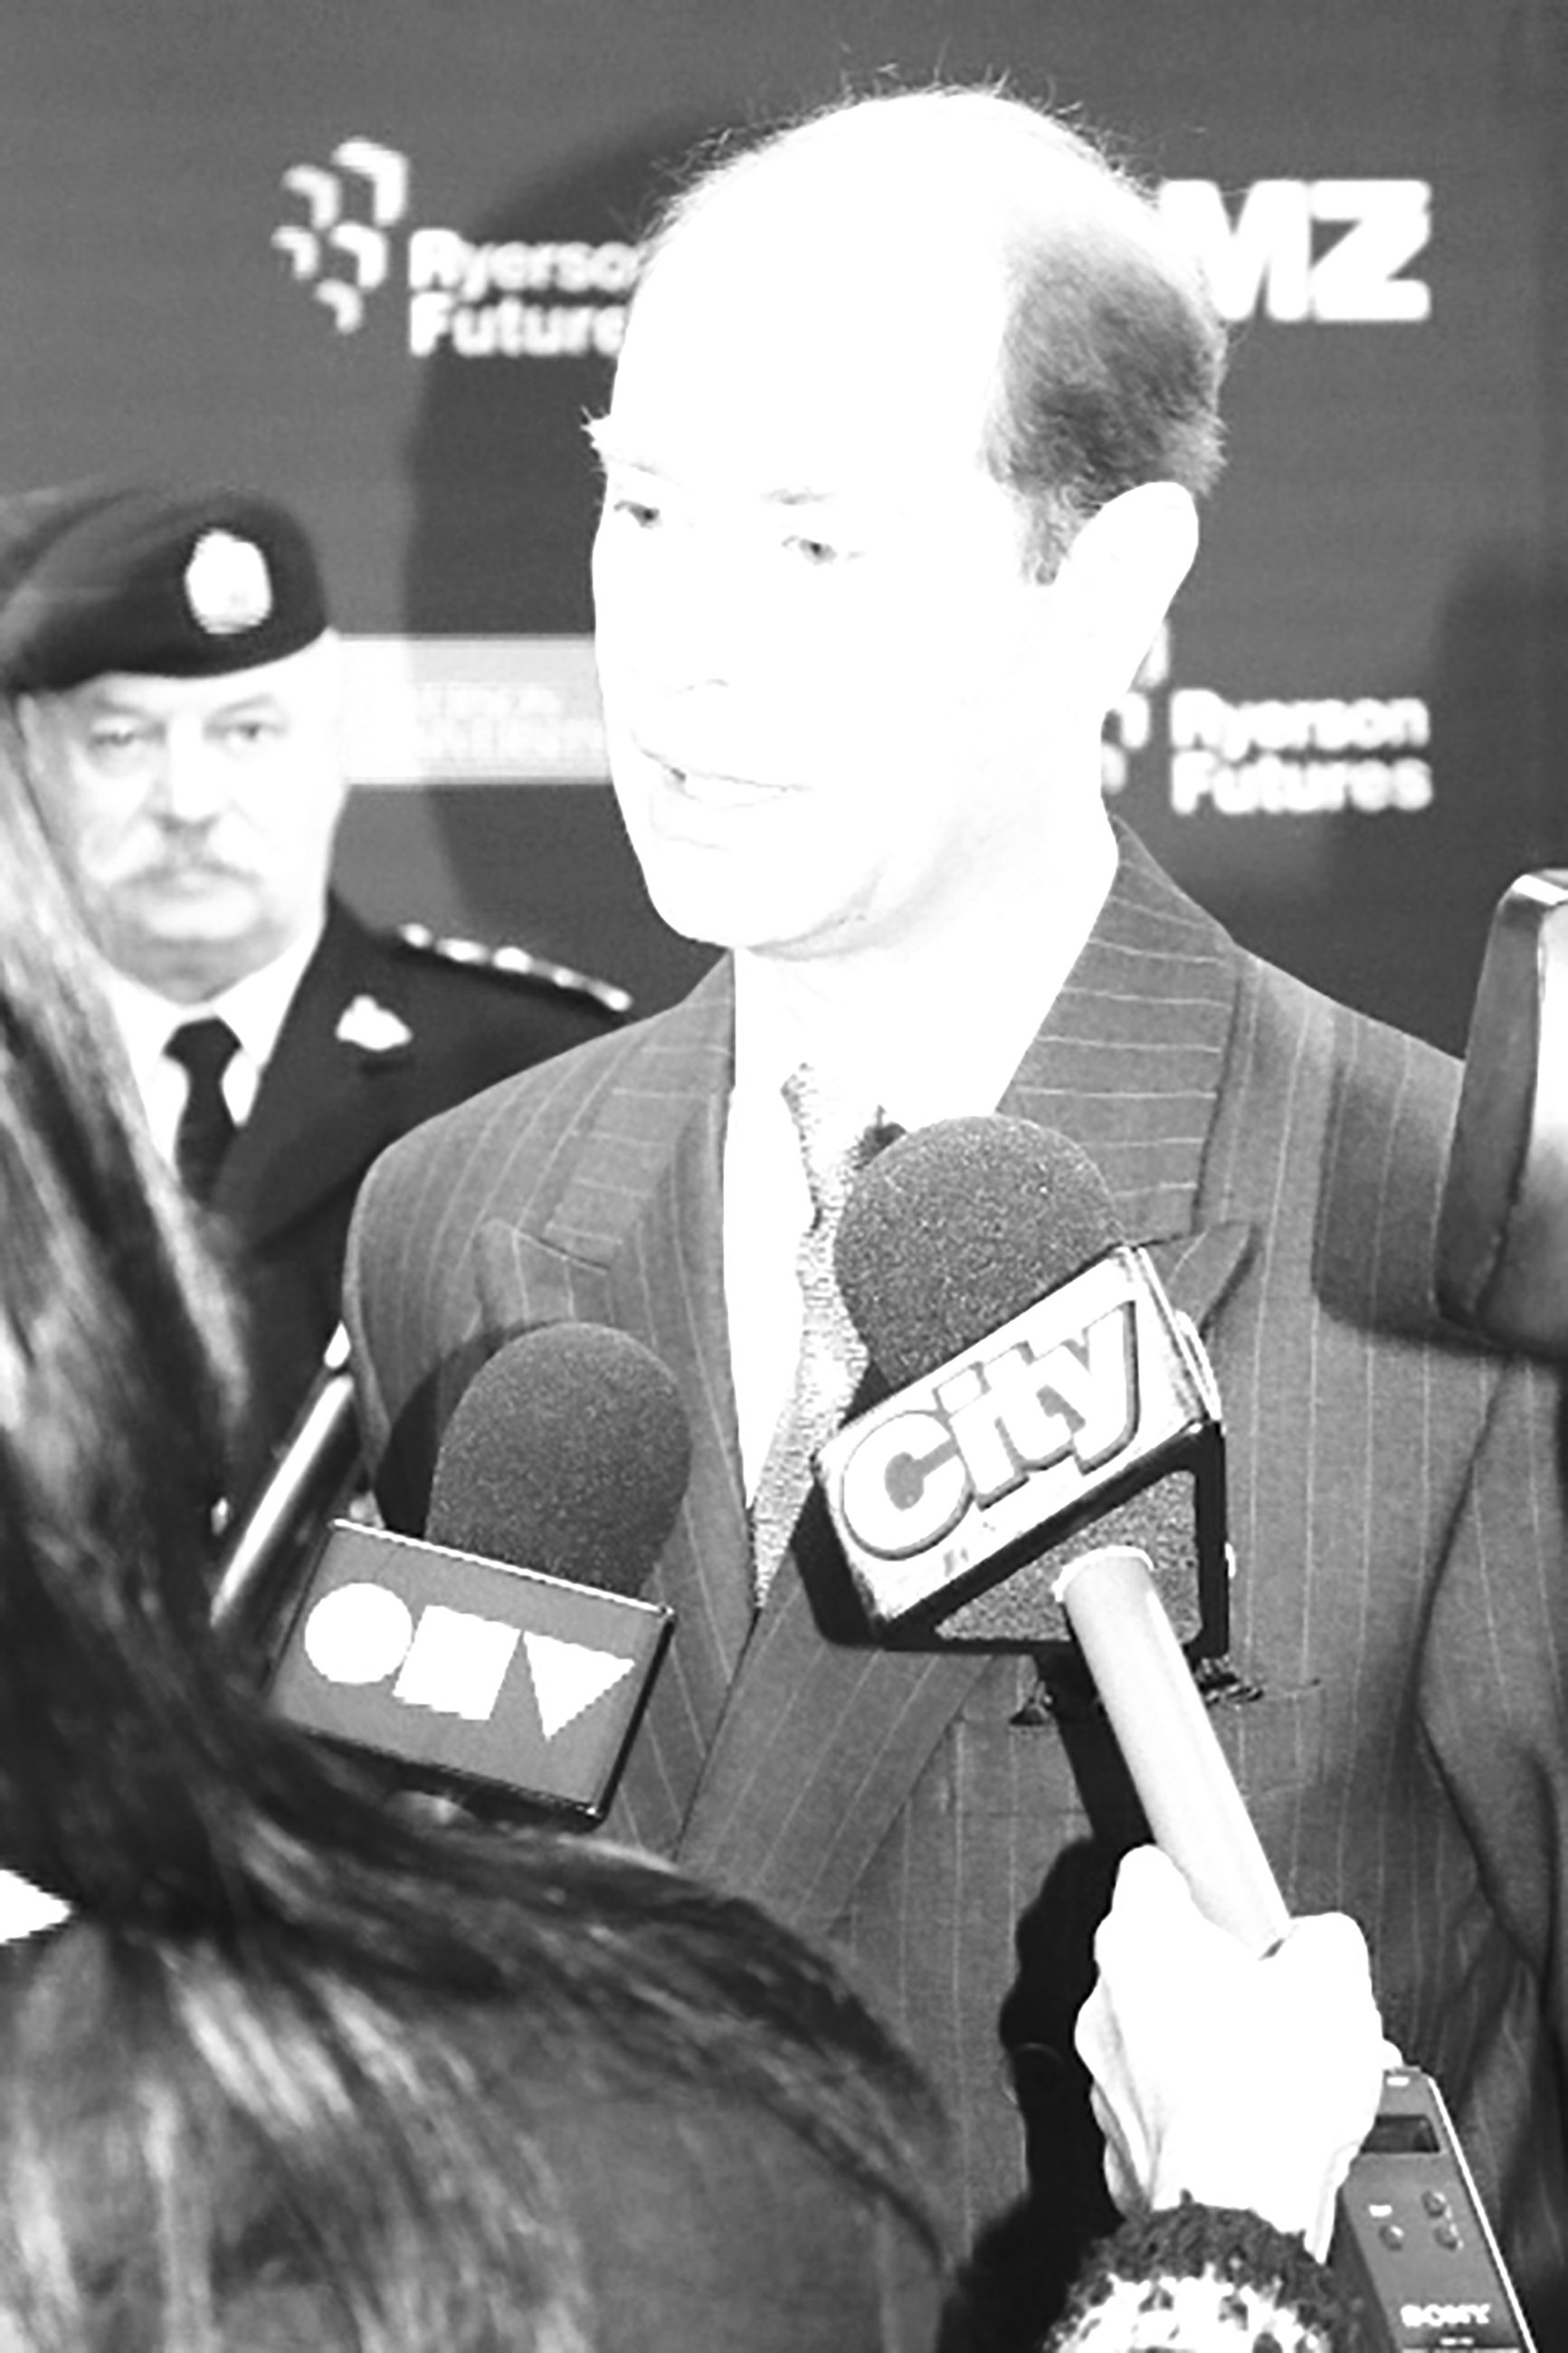 Prince Edward, Queen Elizabeth's youngest son, visited Ryerson's Digital Media Zone on Oct. 27, 2015. He was joined by lieutenant-governor of Ontario Elizabeth Dowdeswell and Sheldon Levy to discuss innovation and education with young entrepreneurs. (Krista Robinson/Ryersonian Staff)